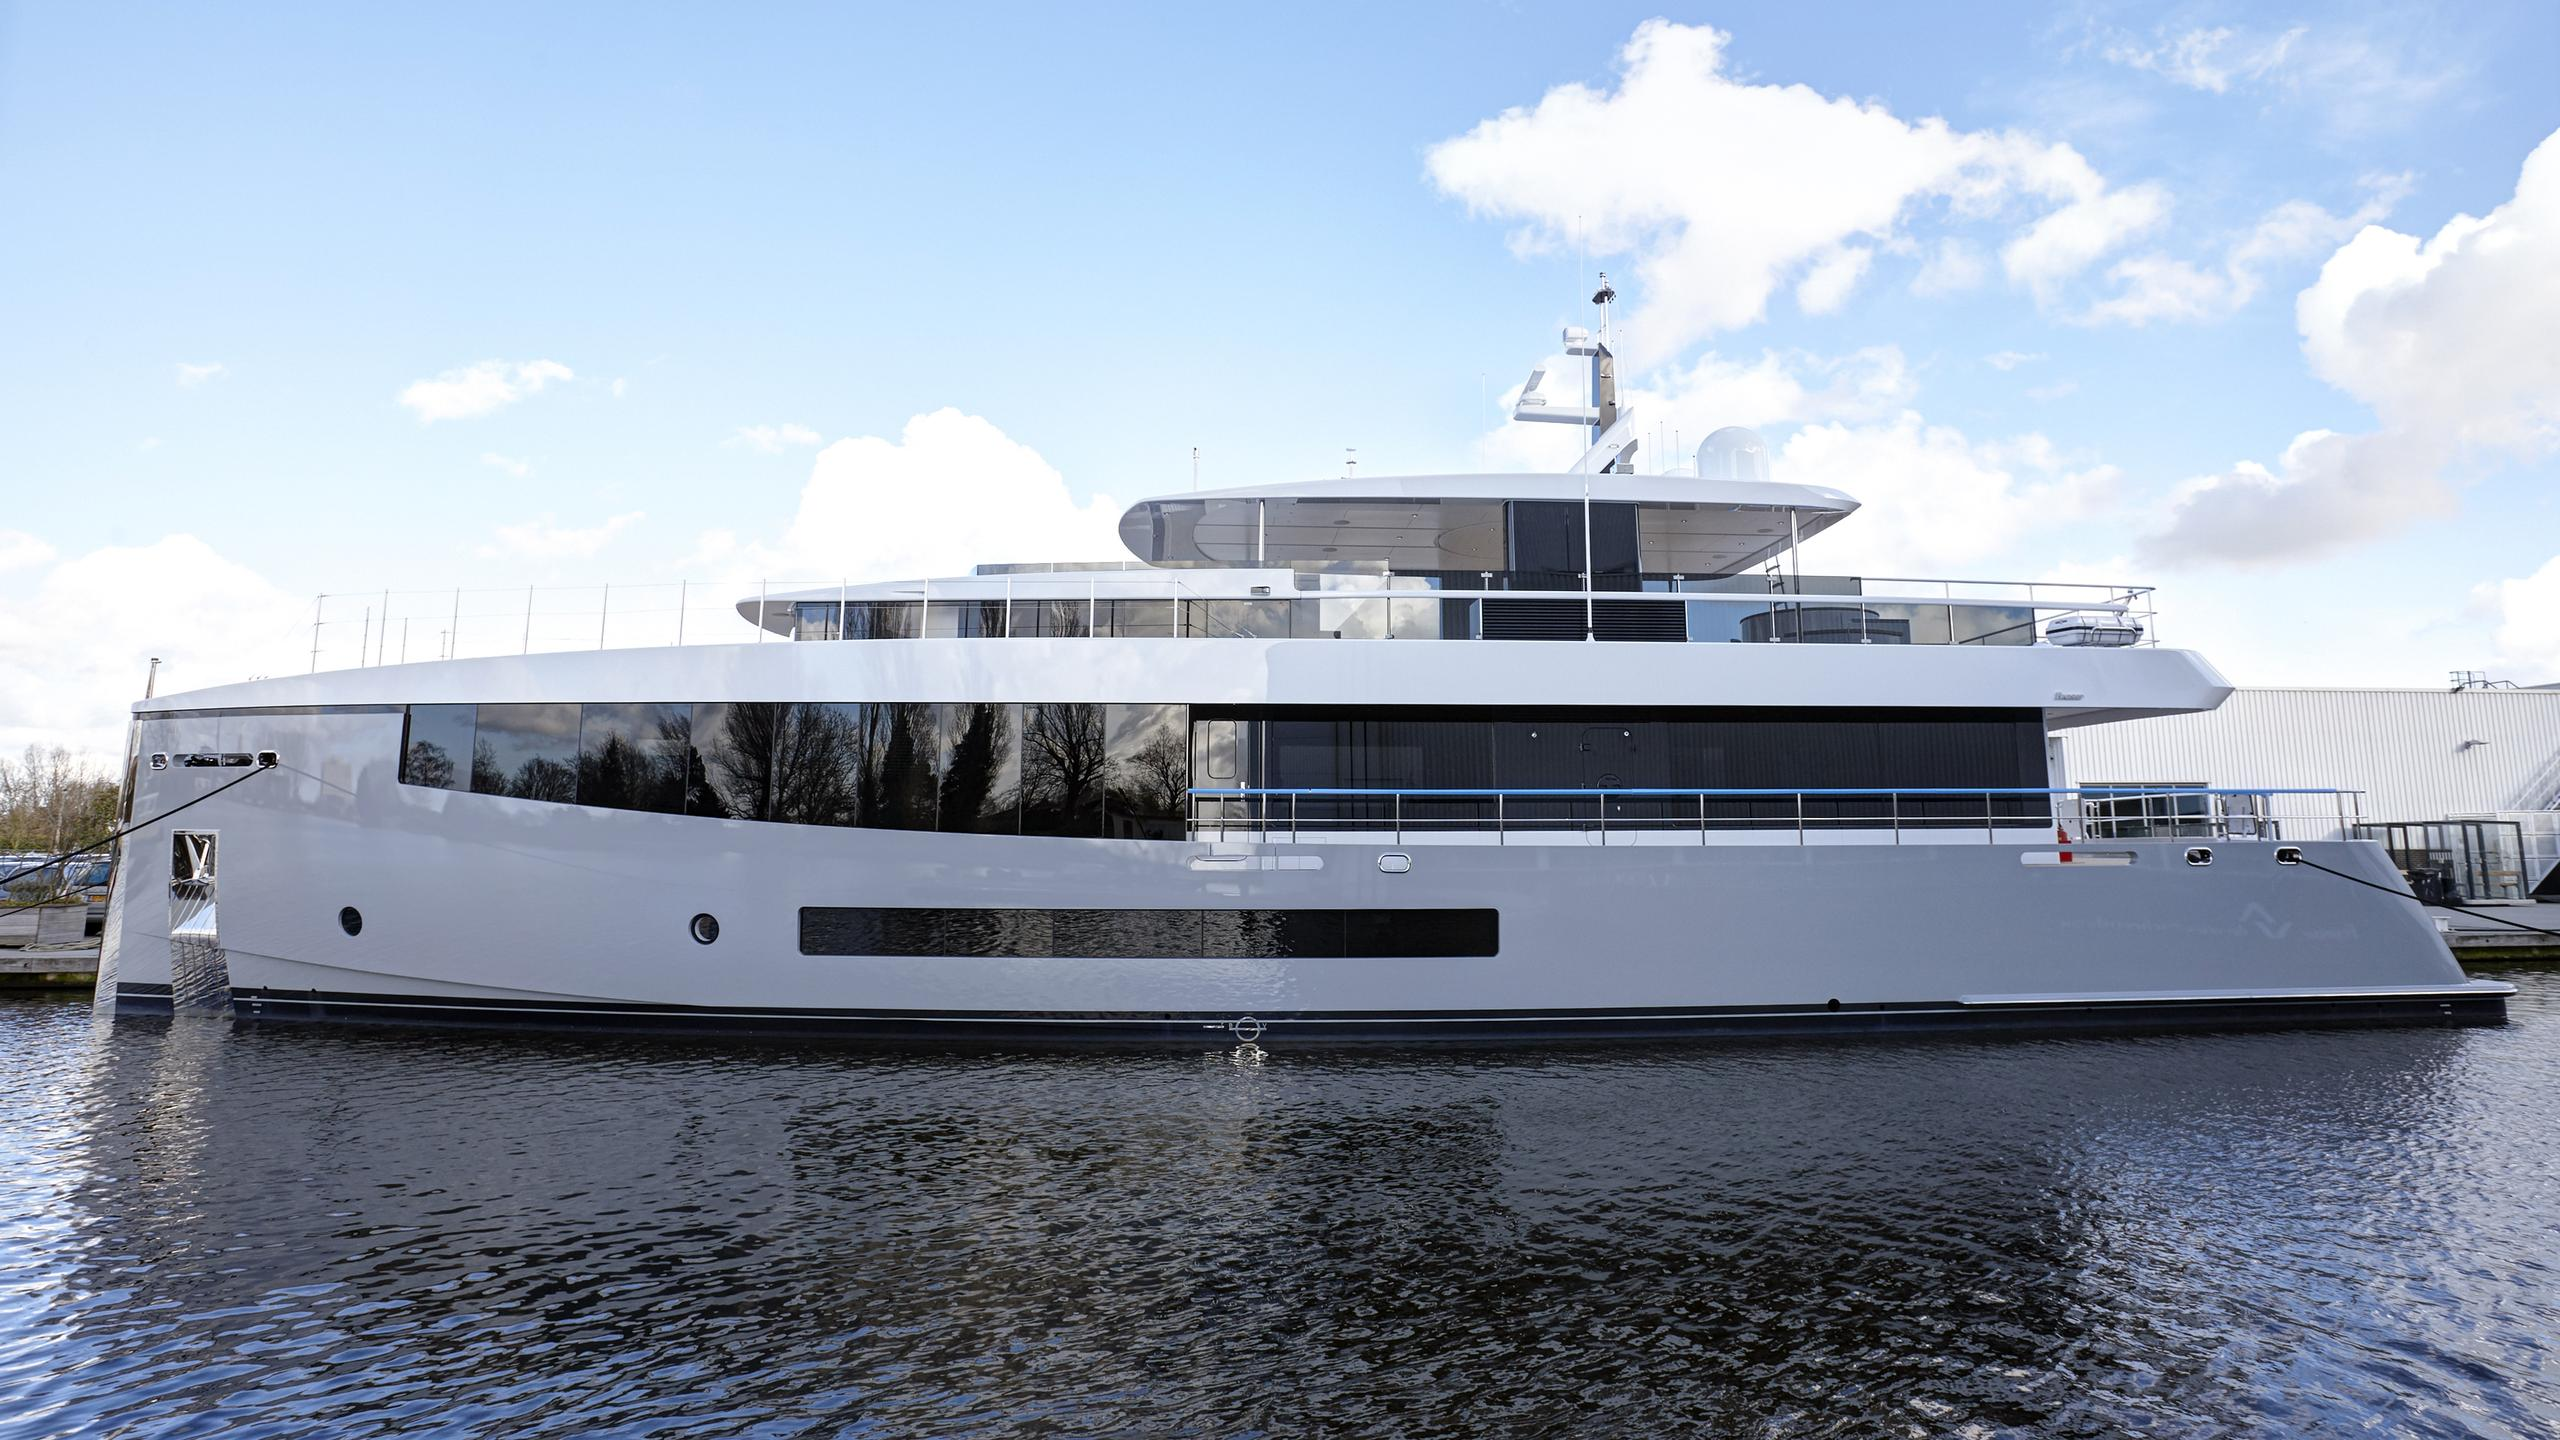 feadship-hull-692-2016-34m-de-voogt-bannenberg-rowell-yacht-profile